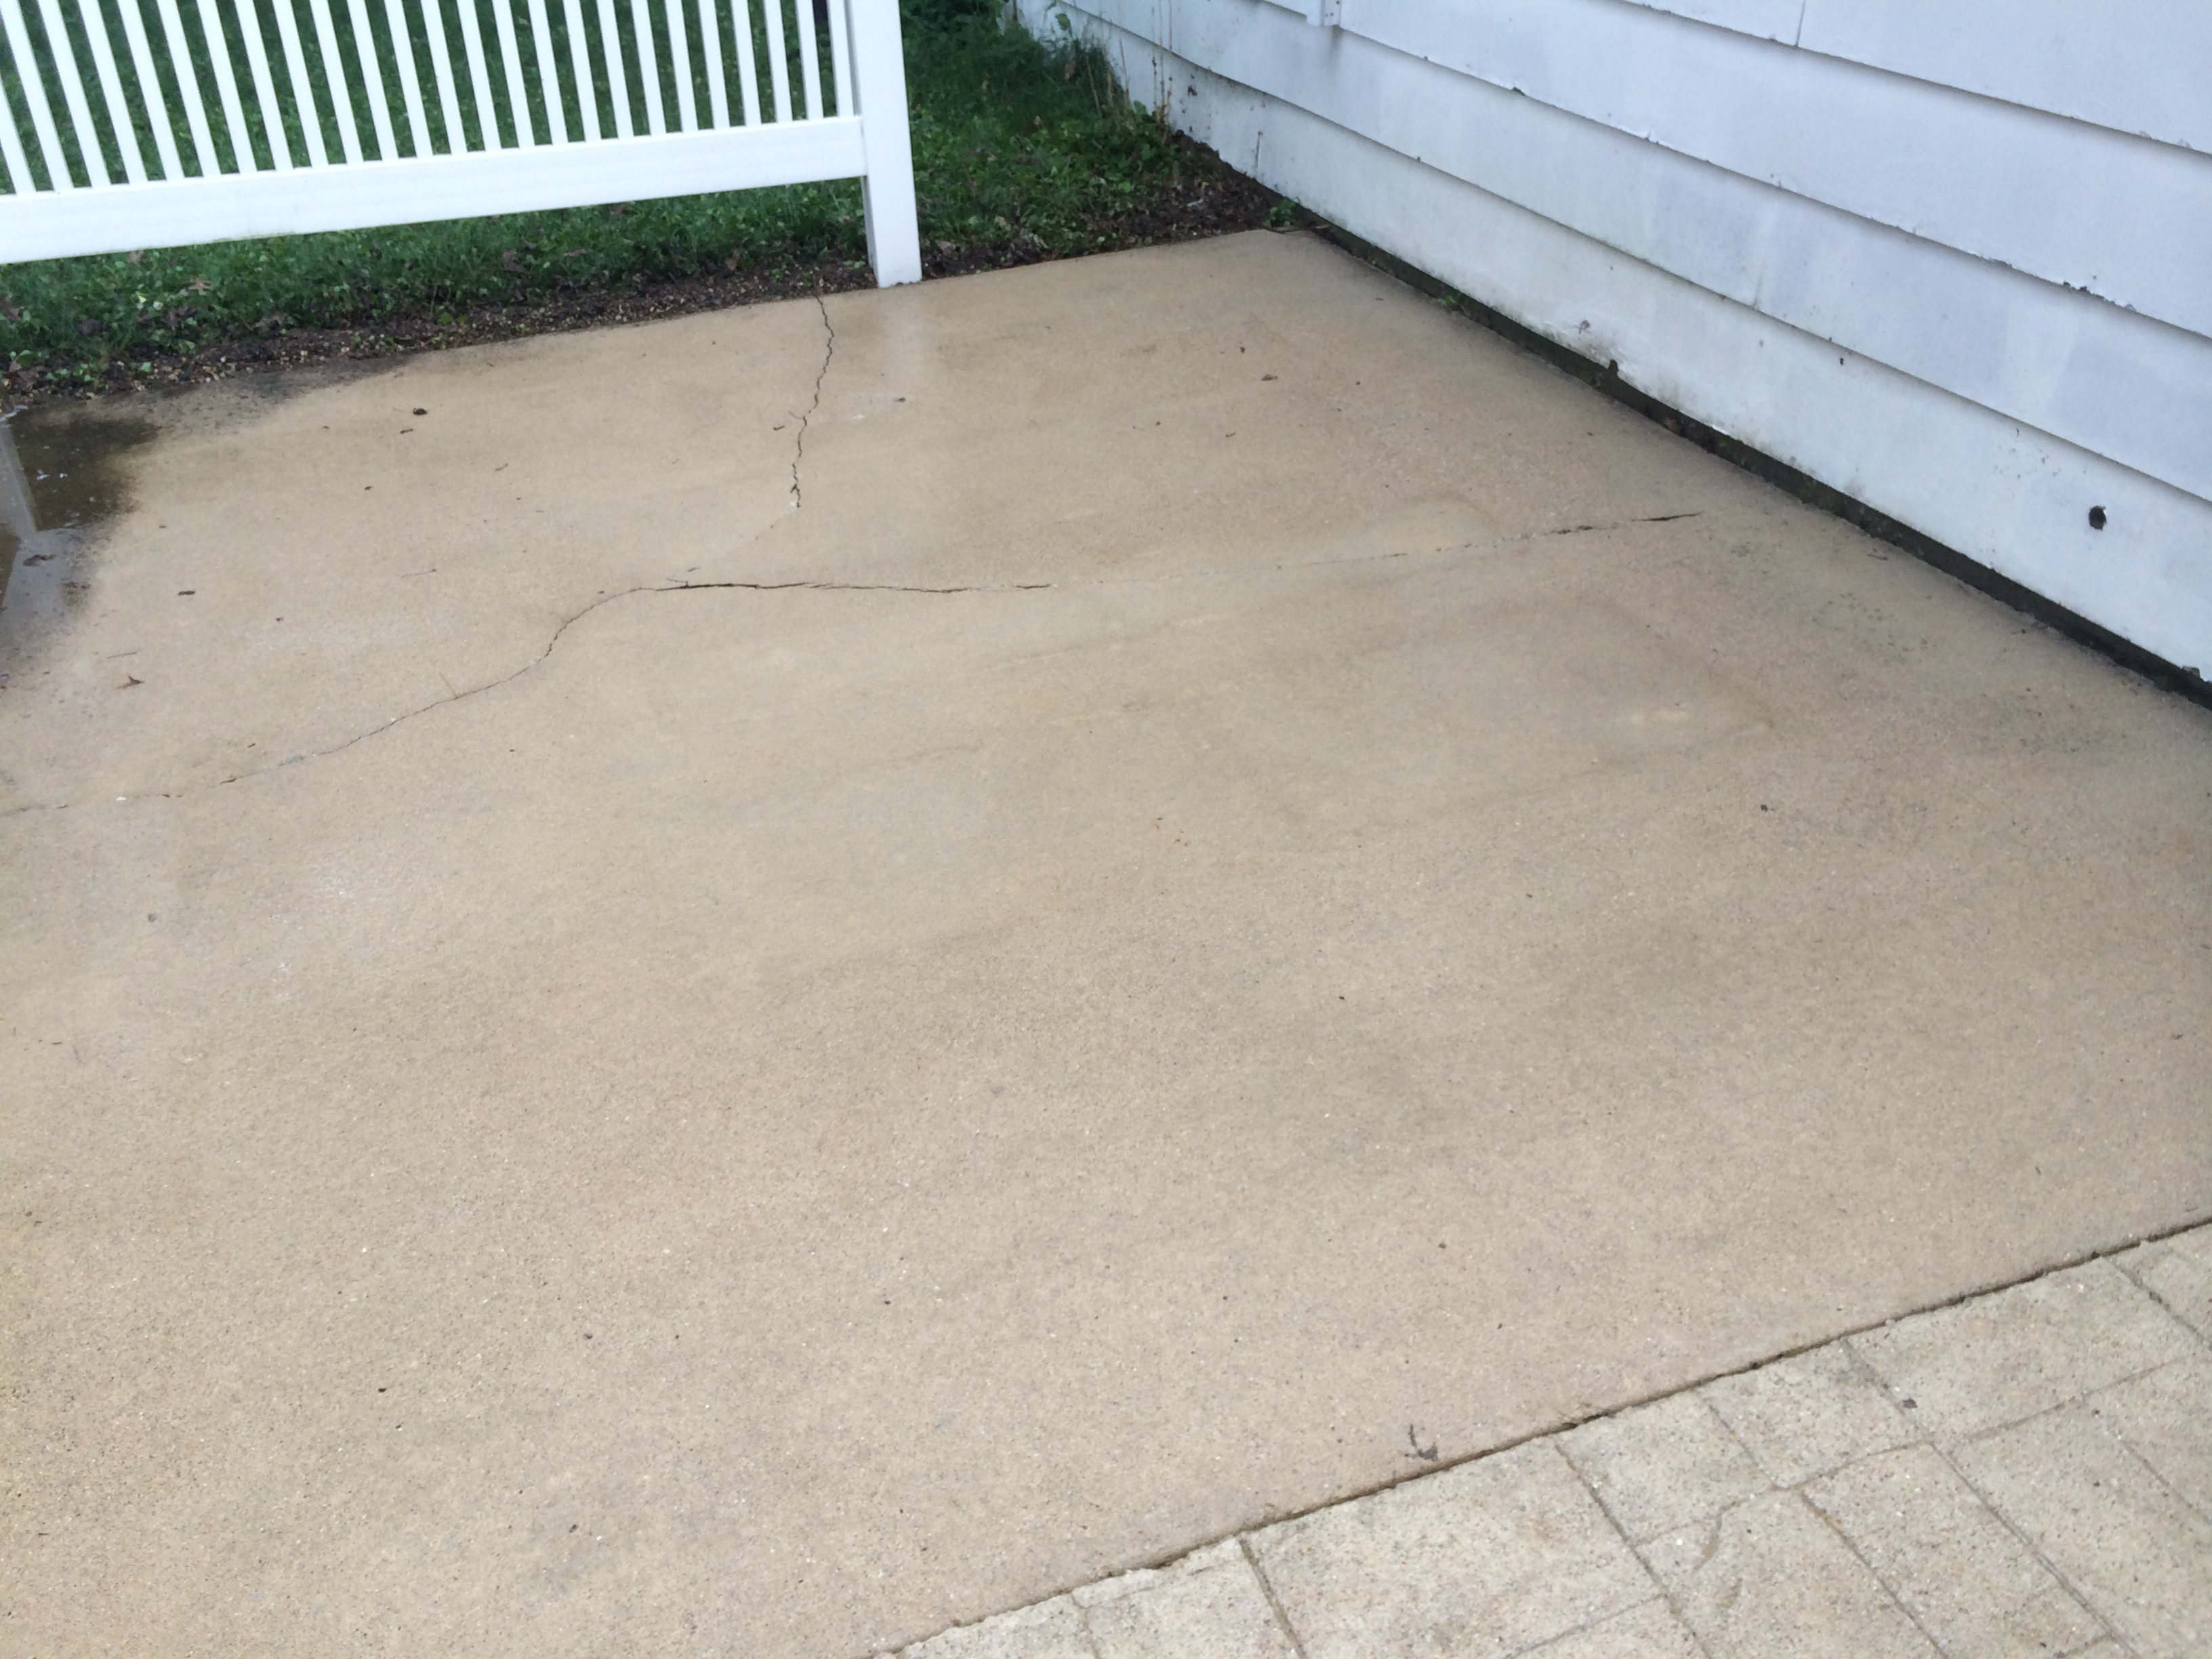 Concrete Patio Cleaning: After